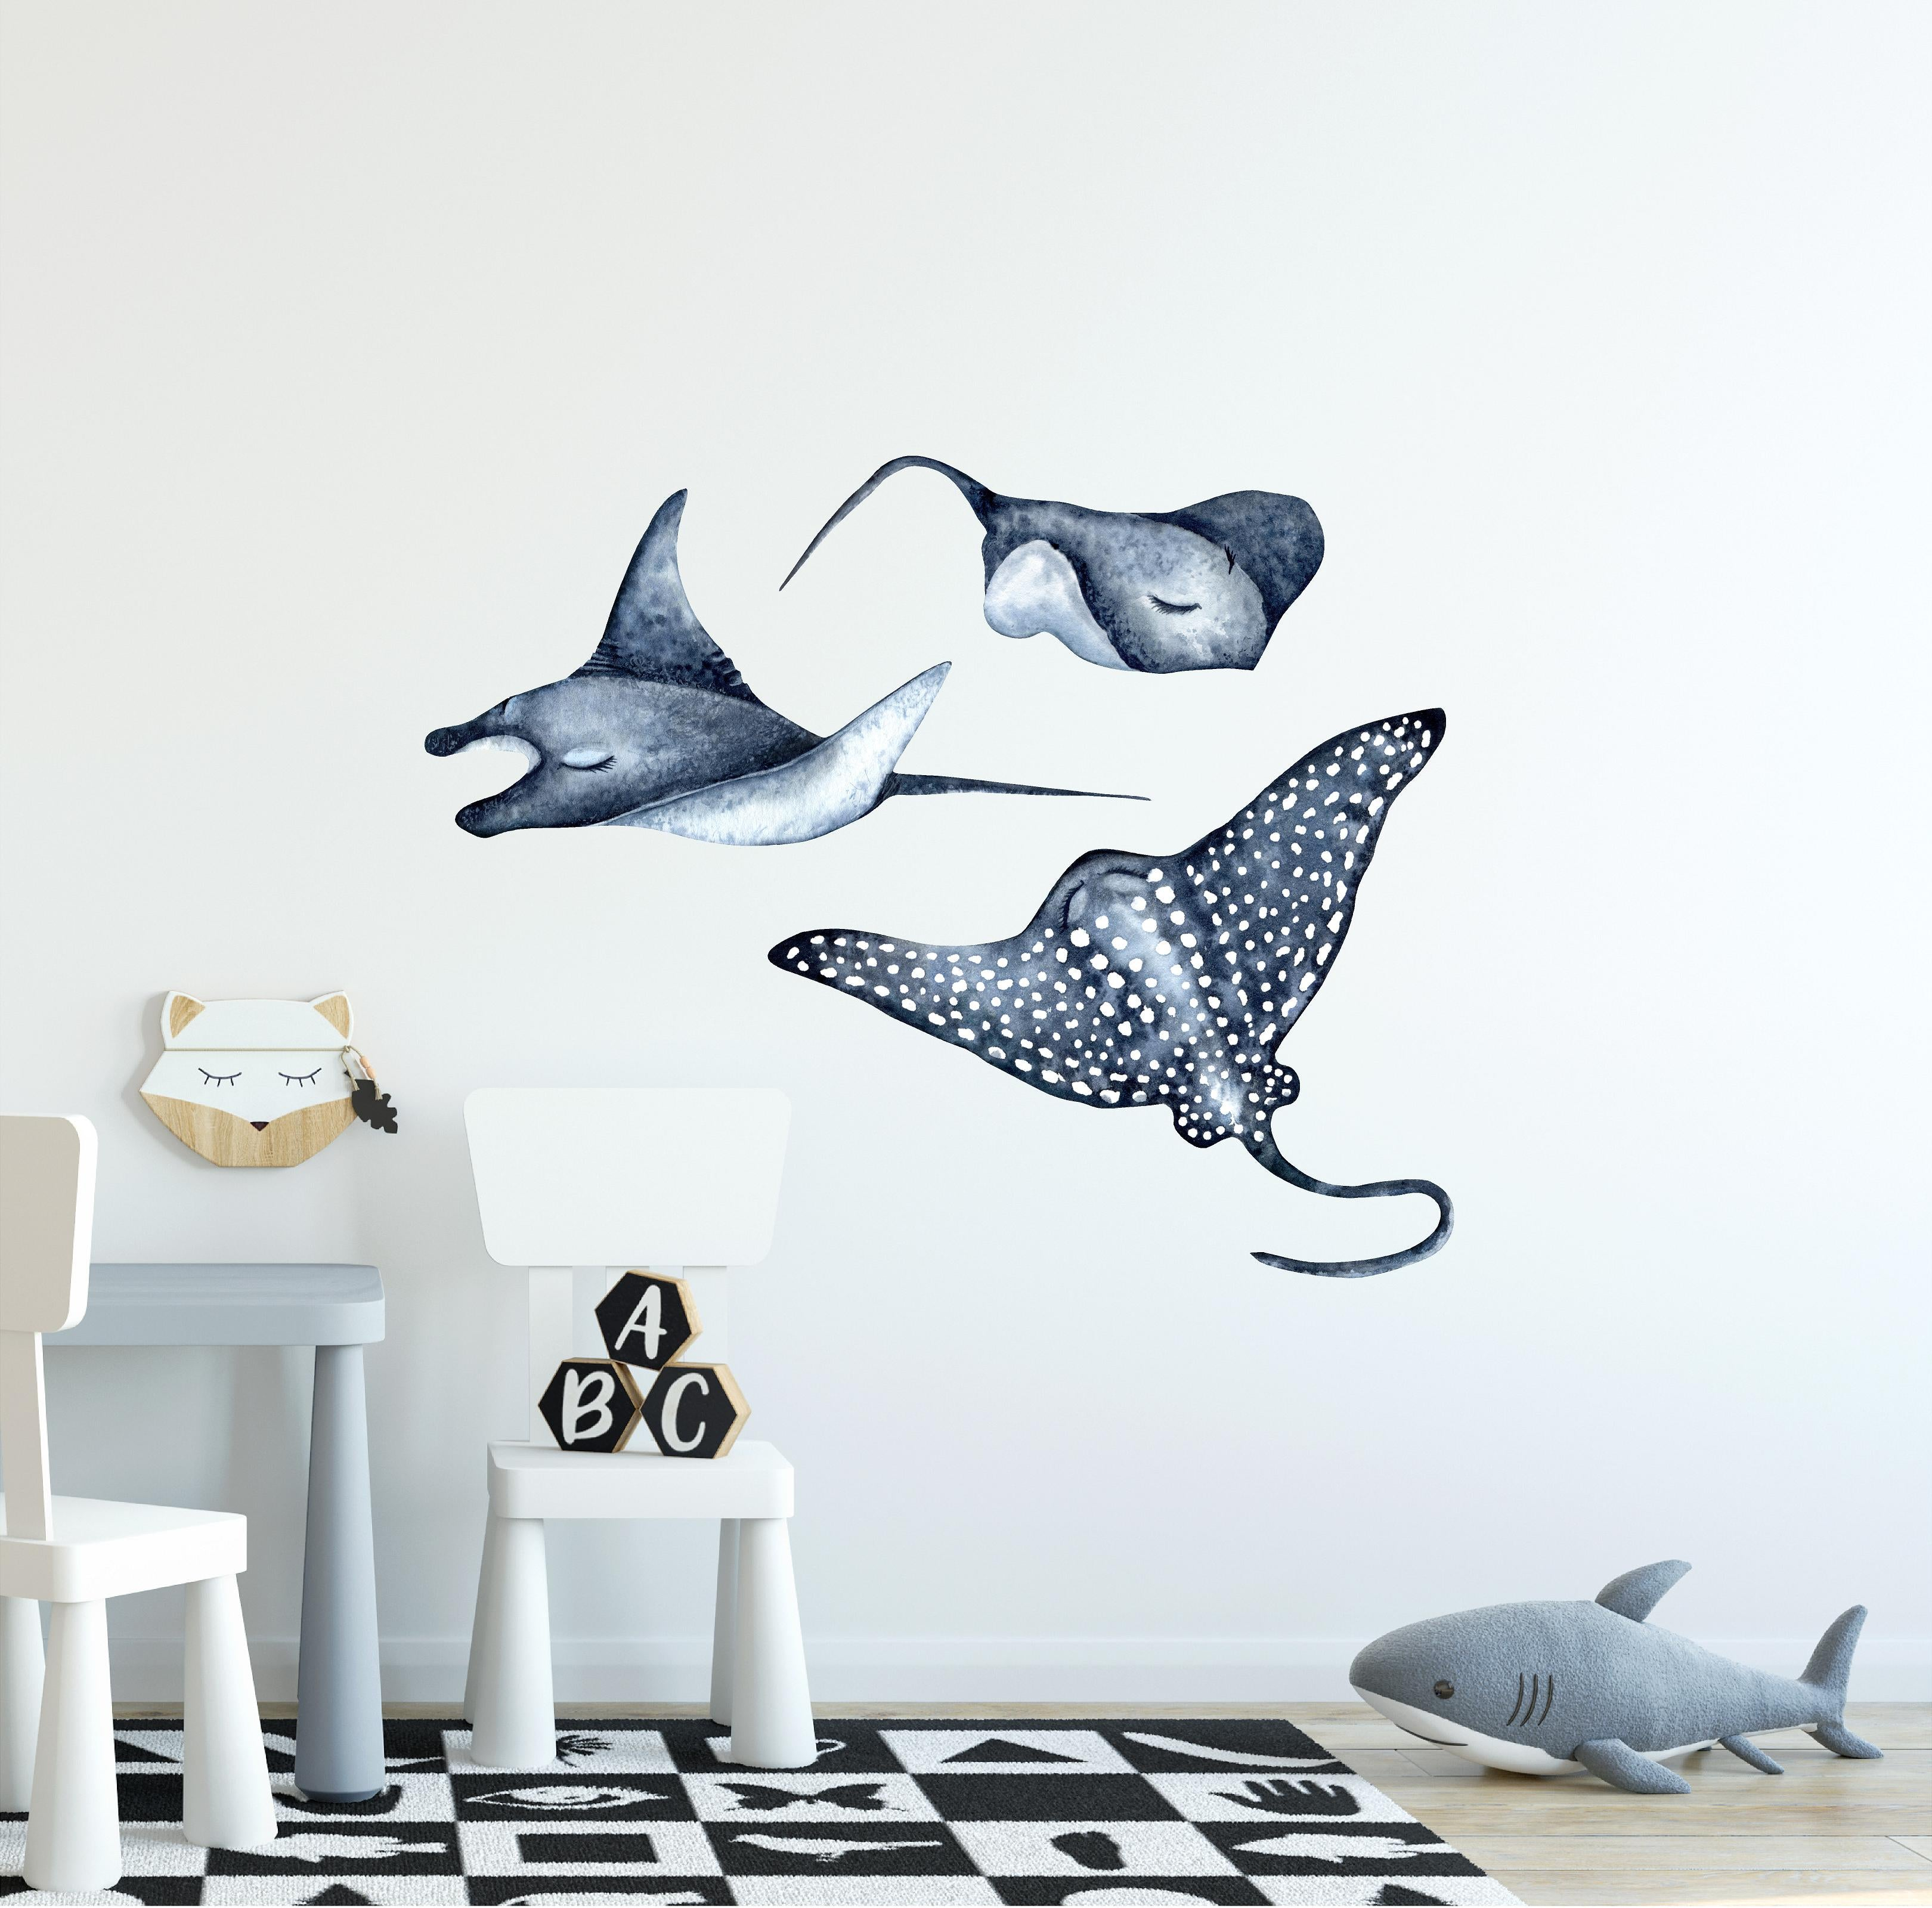 Stingray, Manta Ray & Spotted Eagle Ray Wall Decal Set of 3, Watercolor Navy Stingrays Wall Sticker Sea Ocean Fish | DecalBaby